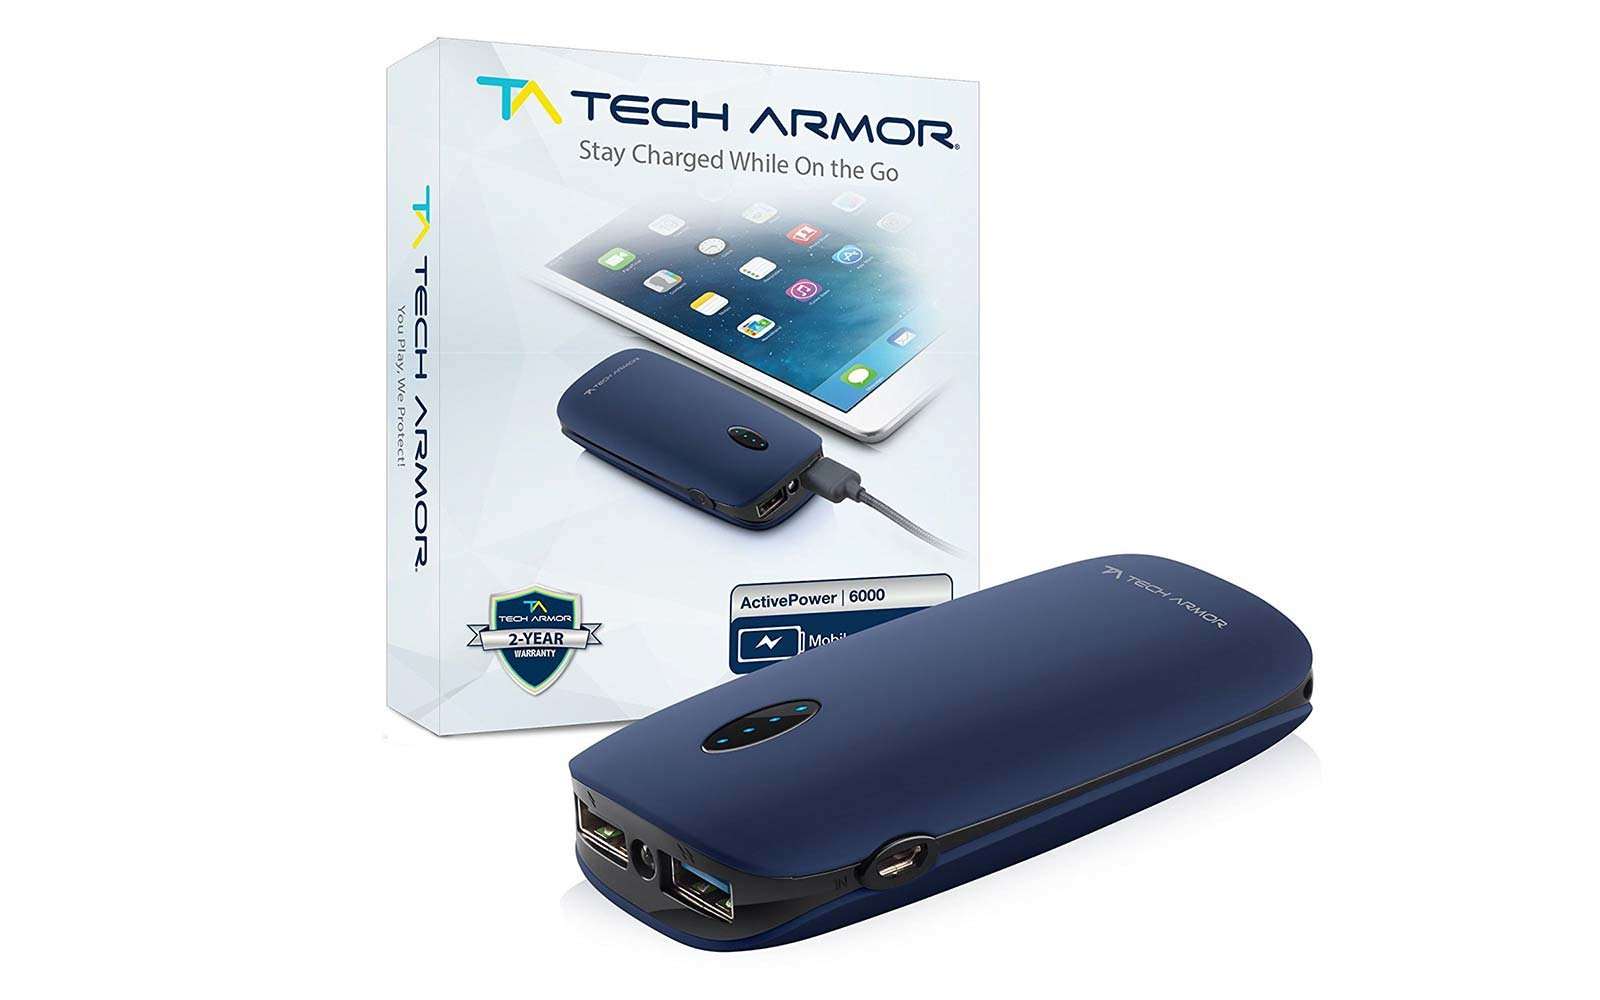 Travel Portable Phone Battery Charger Tech Armor